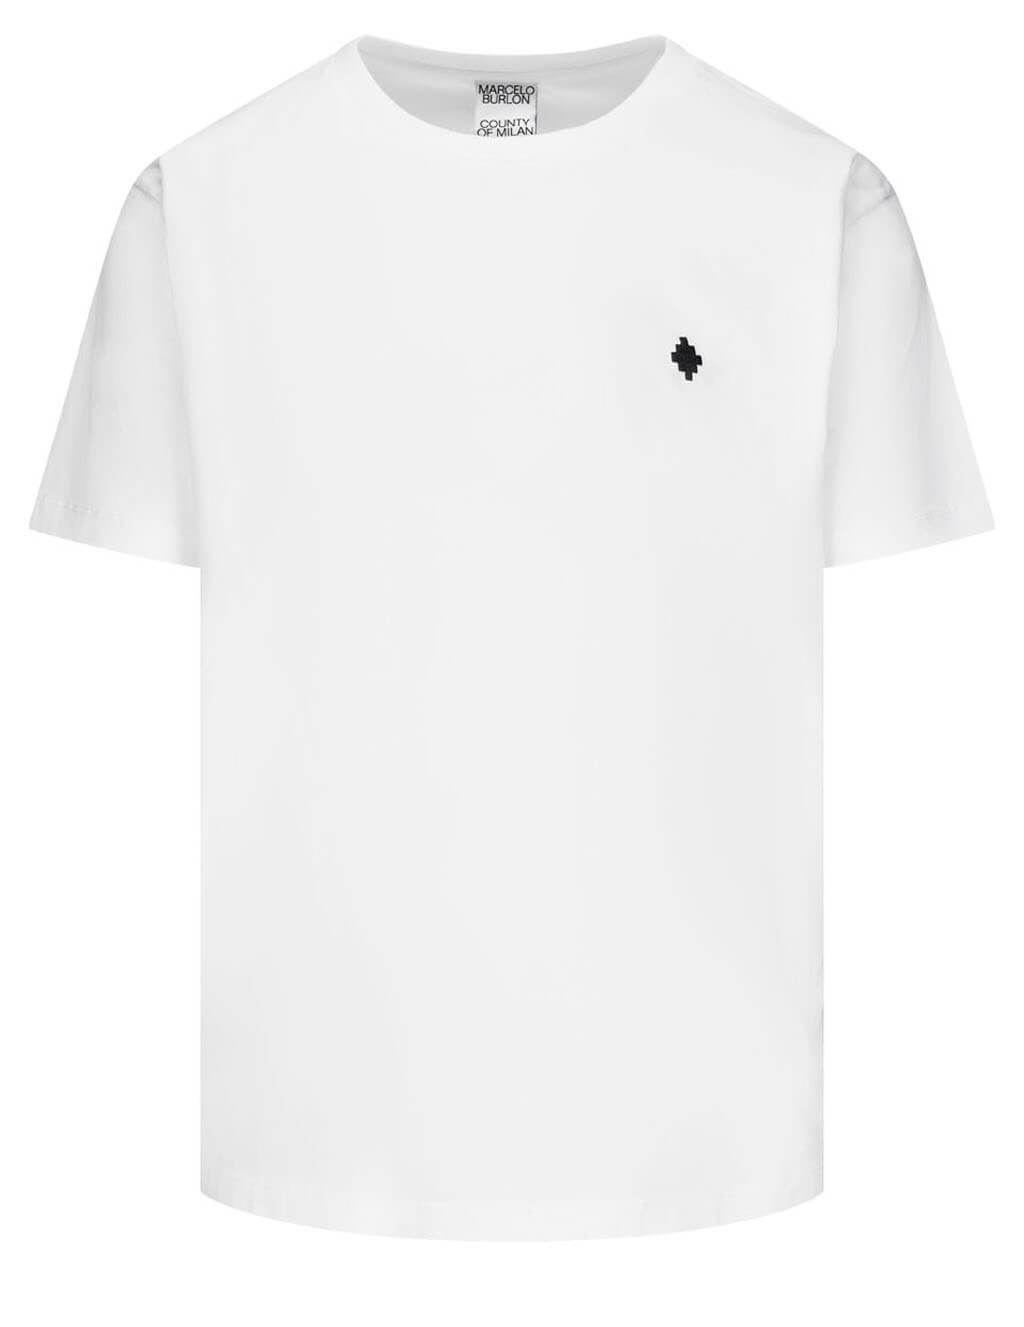 Men's Marcelo Burlon Cross Logo T-Shirt in White/Black - CMAA075R21JER0010110